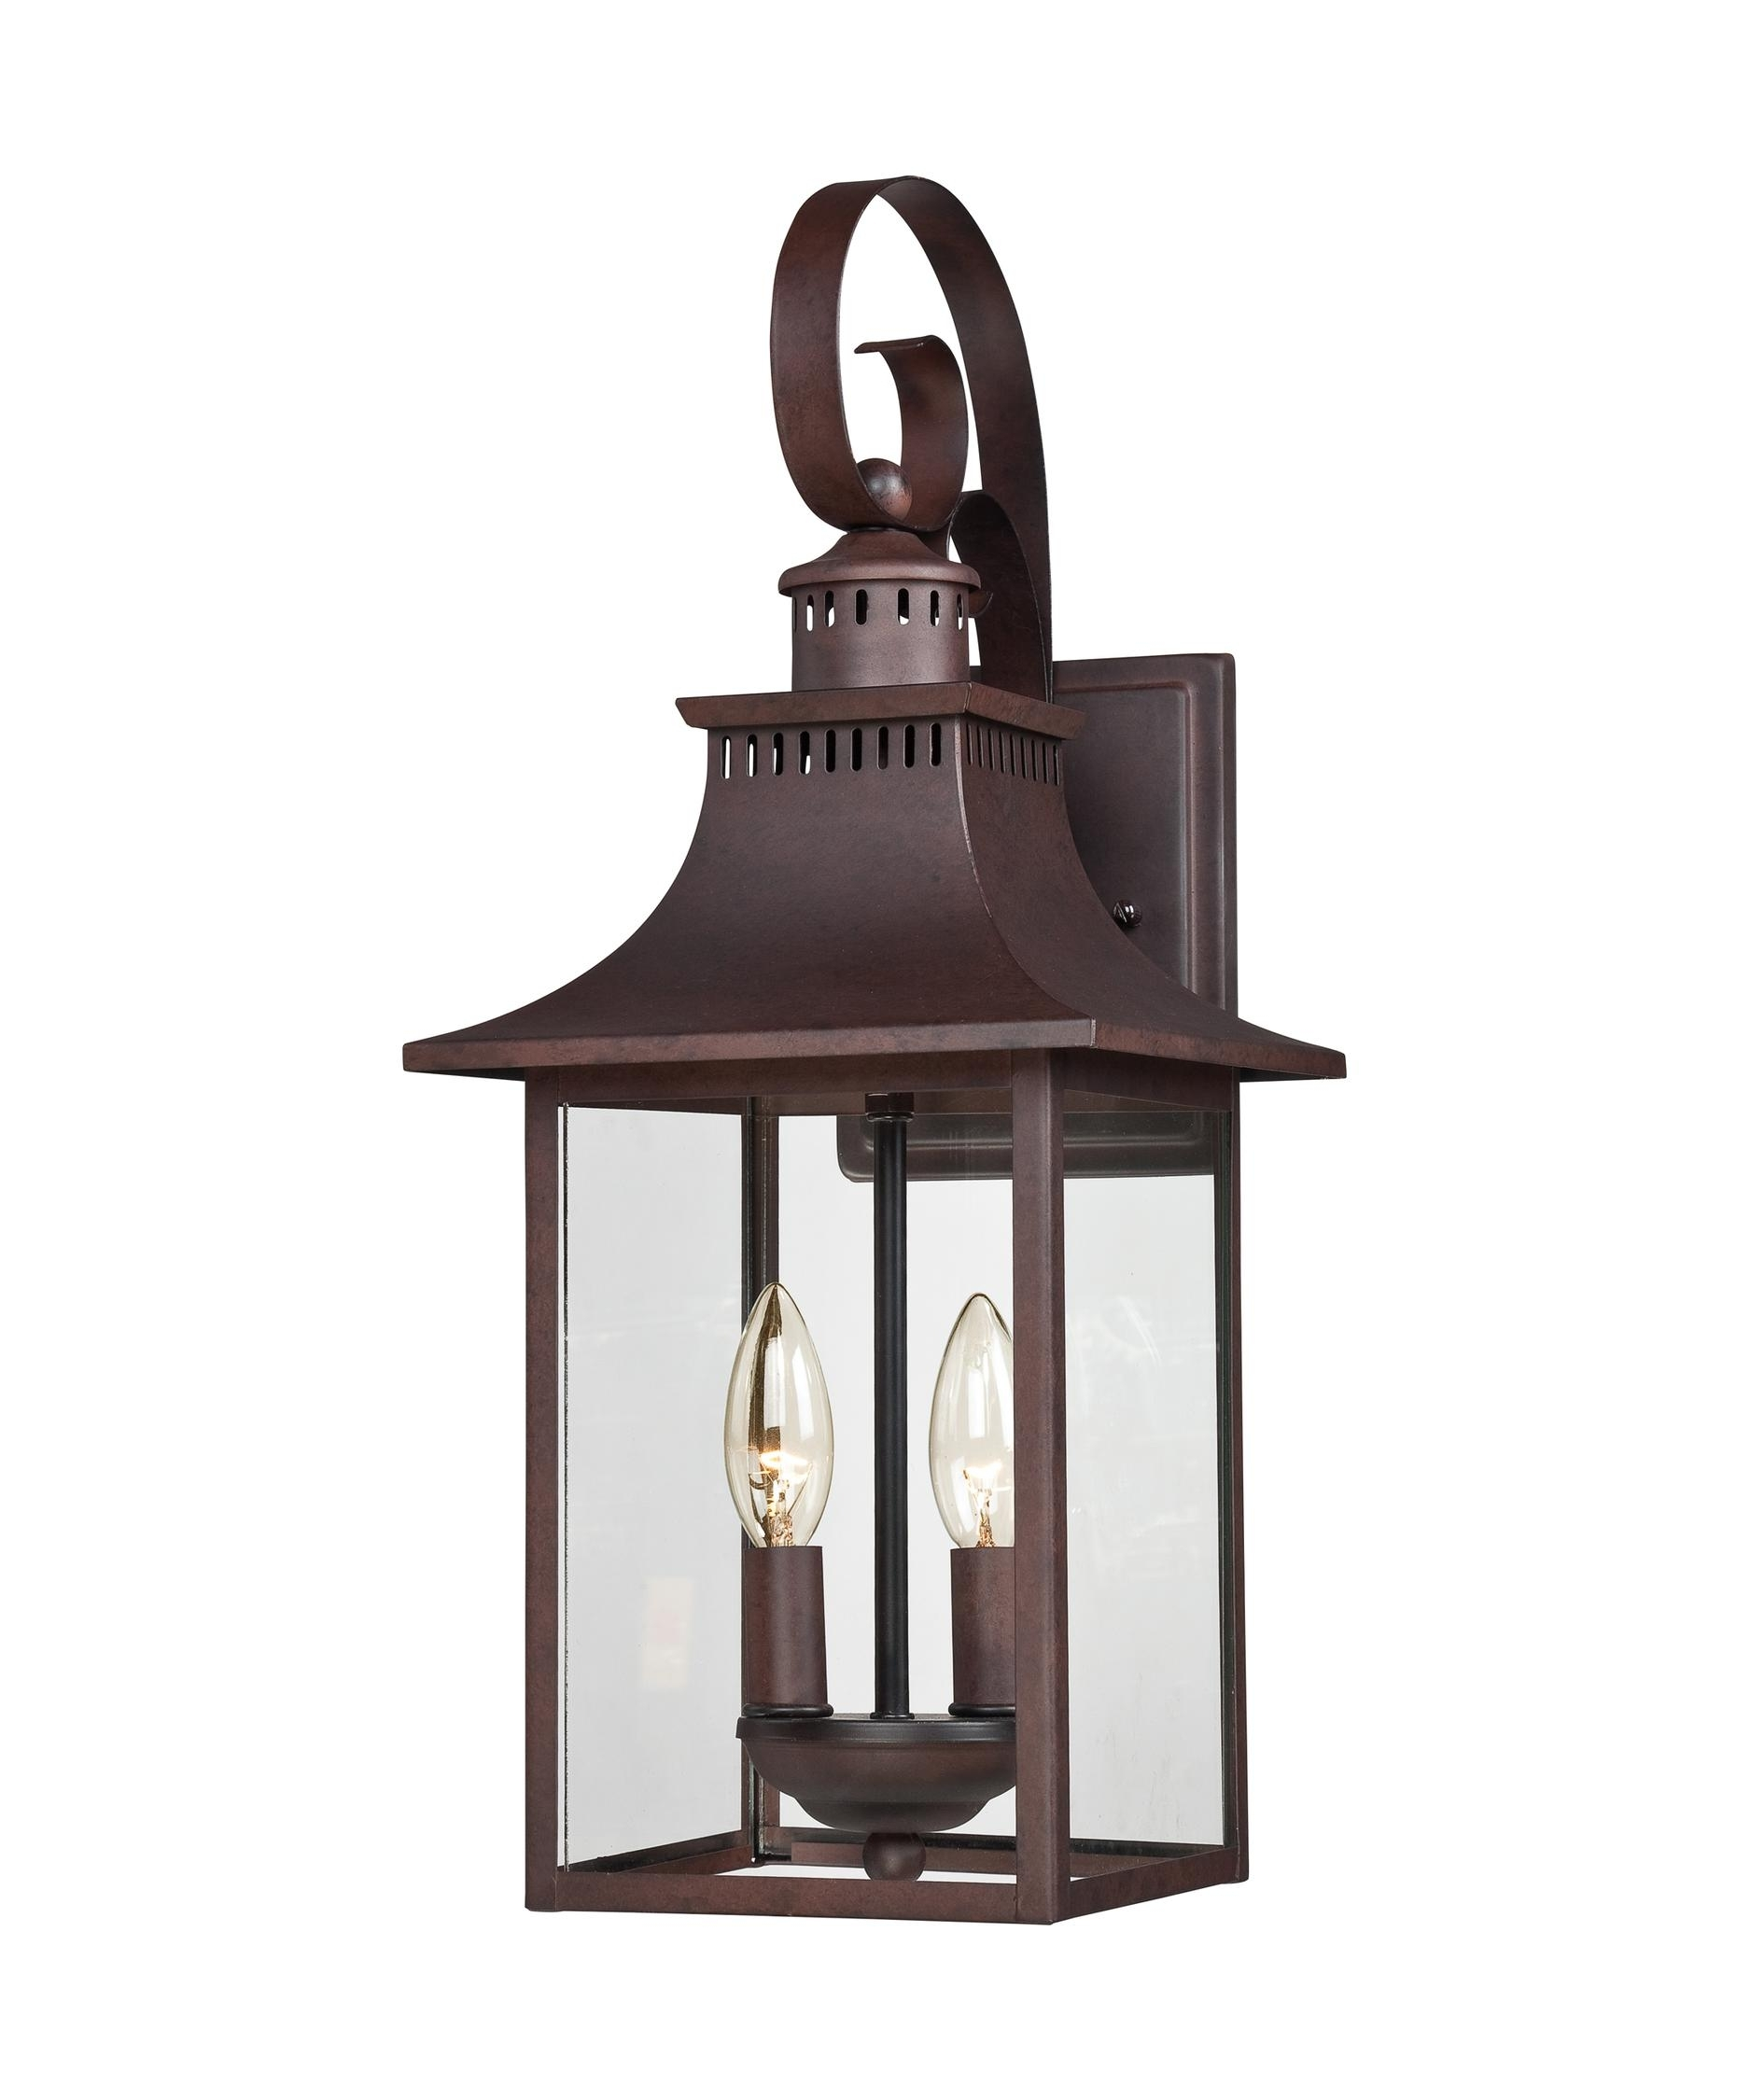 Quoizel Ccr8408 Chancellor 8 Inch Wide 2 Light Outdoor Wall Light with Industrial Outdoor Lanterns (Image 15 of 20)